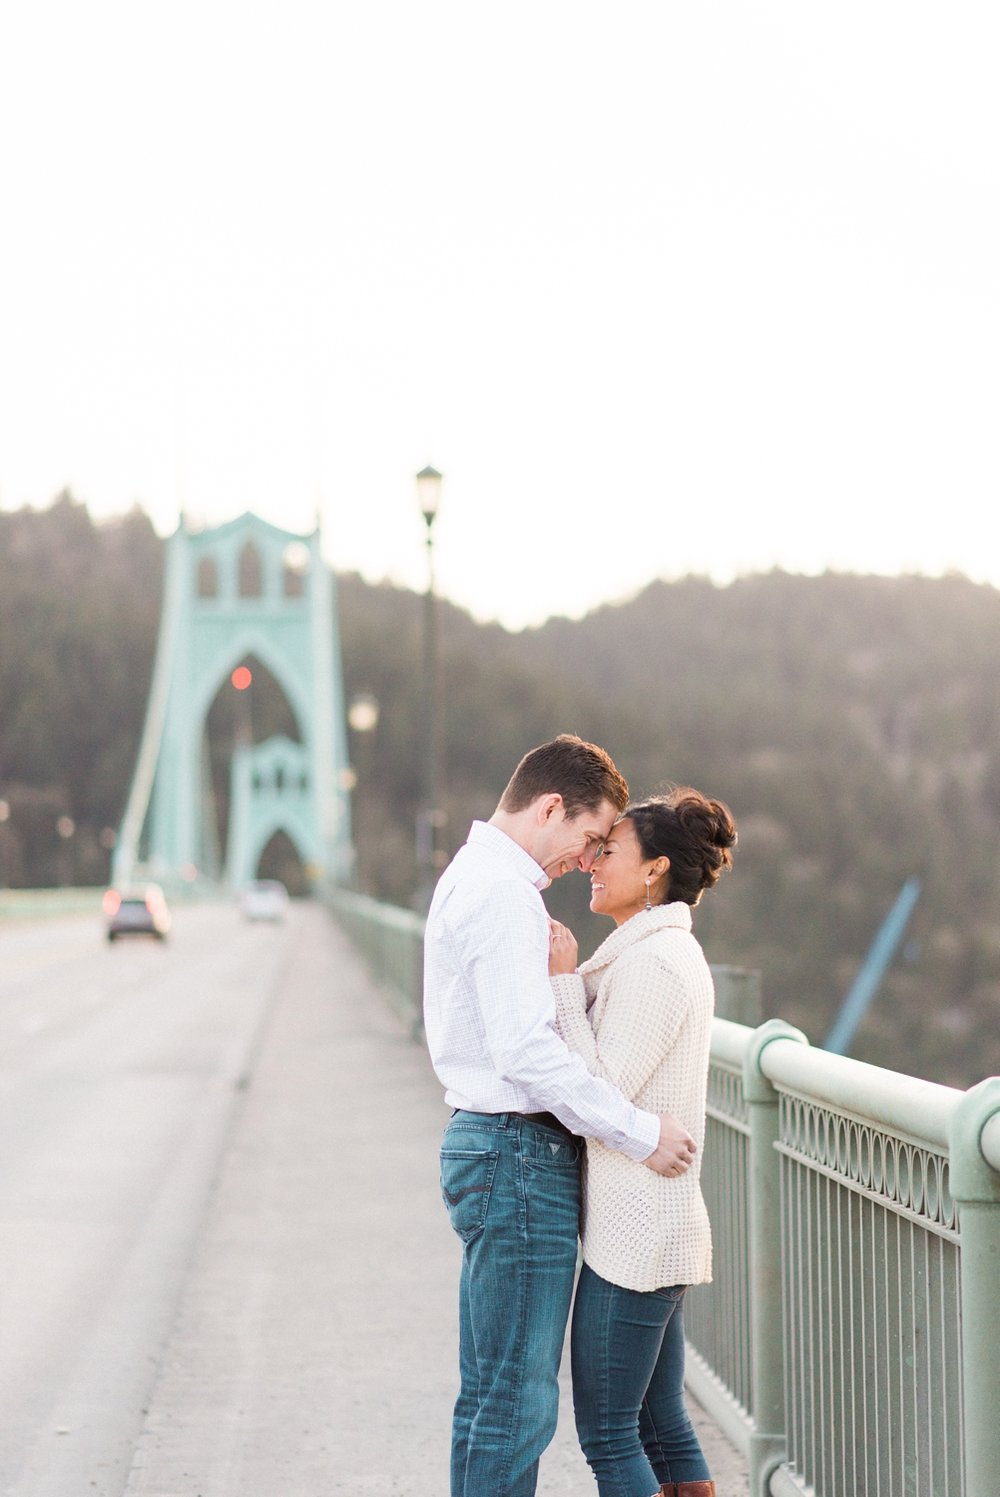 portland-waterfront-engagement-cherry-blossom-cathedral-park-sokhorn-jay-331_cr.jpg